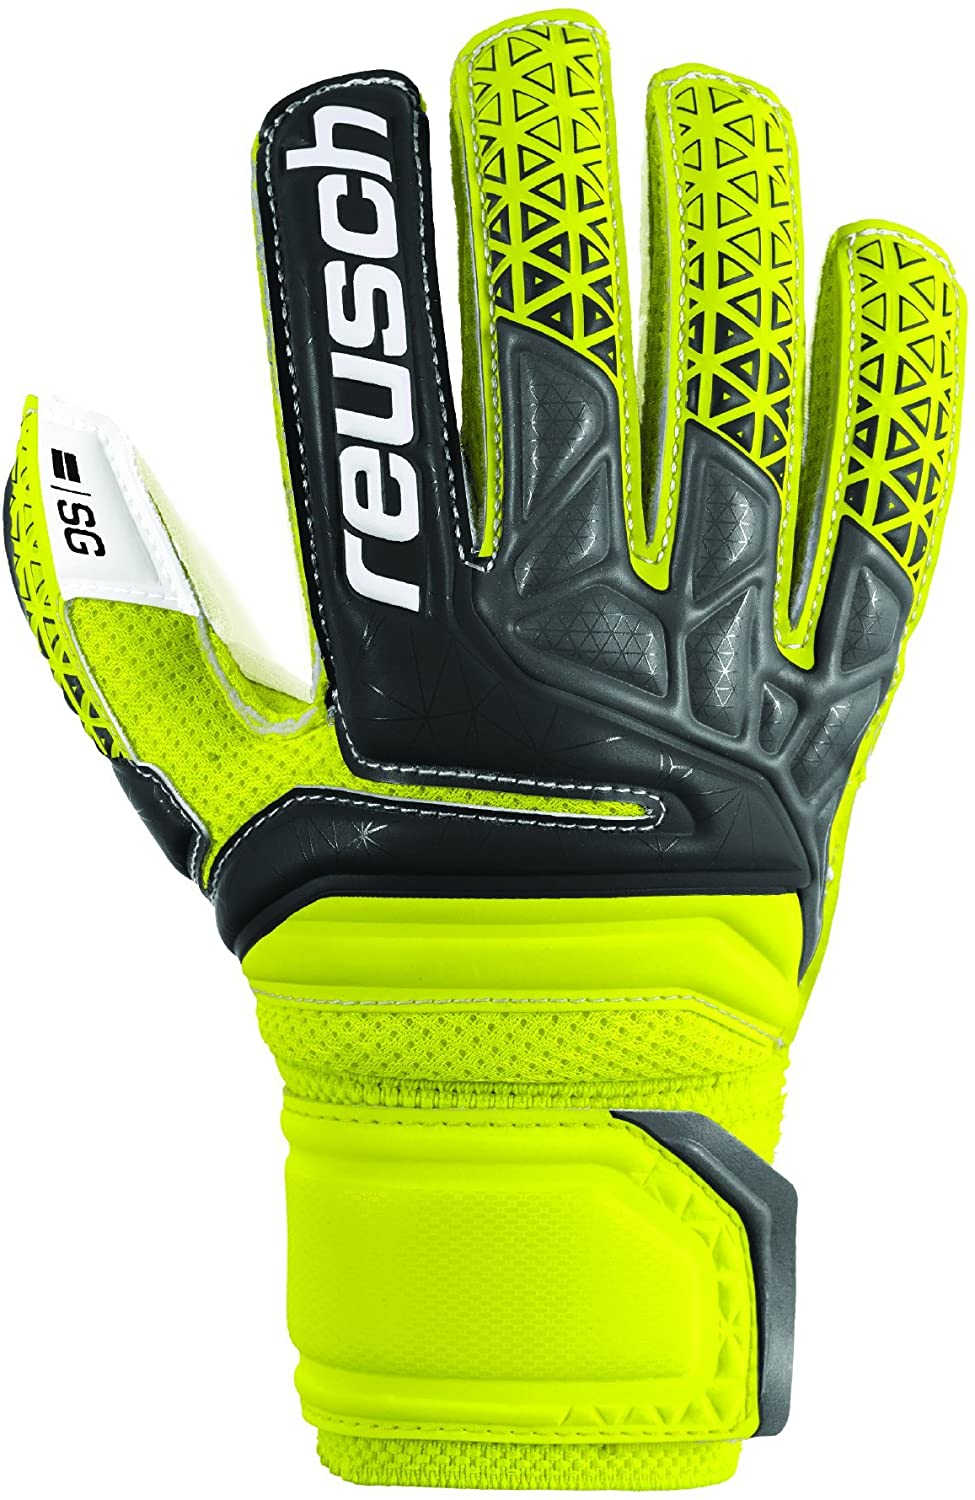 Reusch Prisma SG Finger Support Junior Goalkeeper Glove